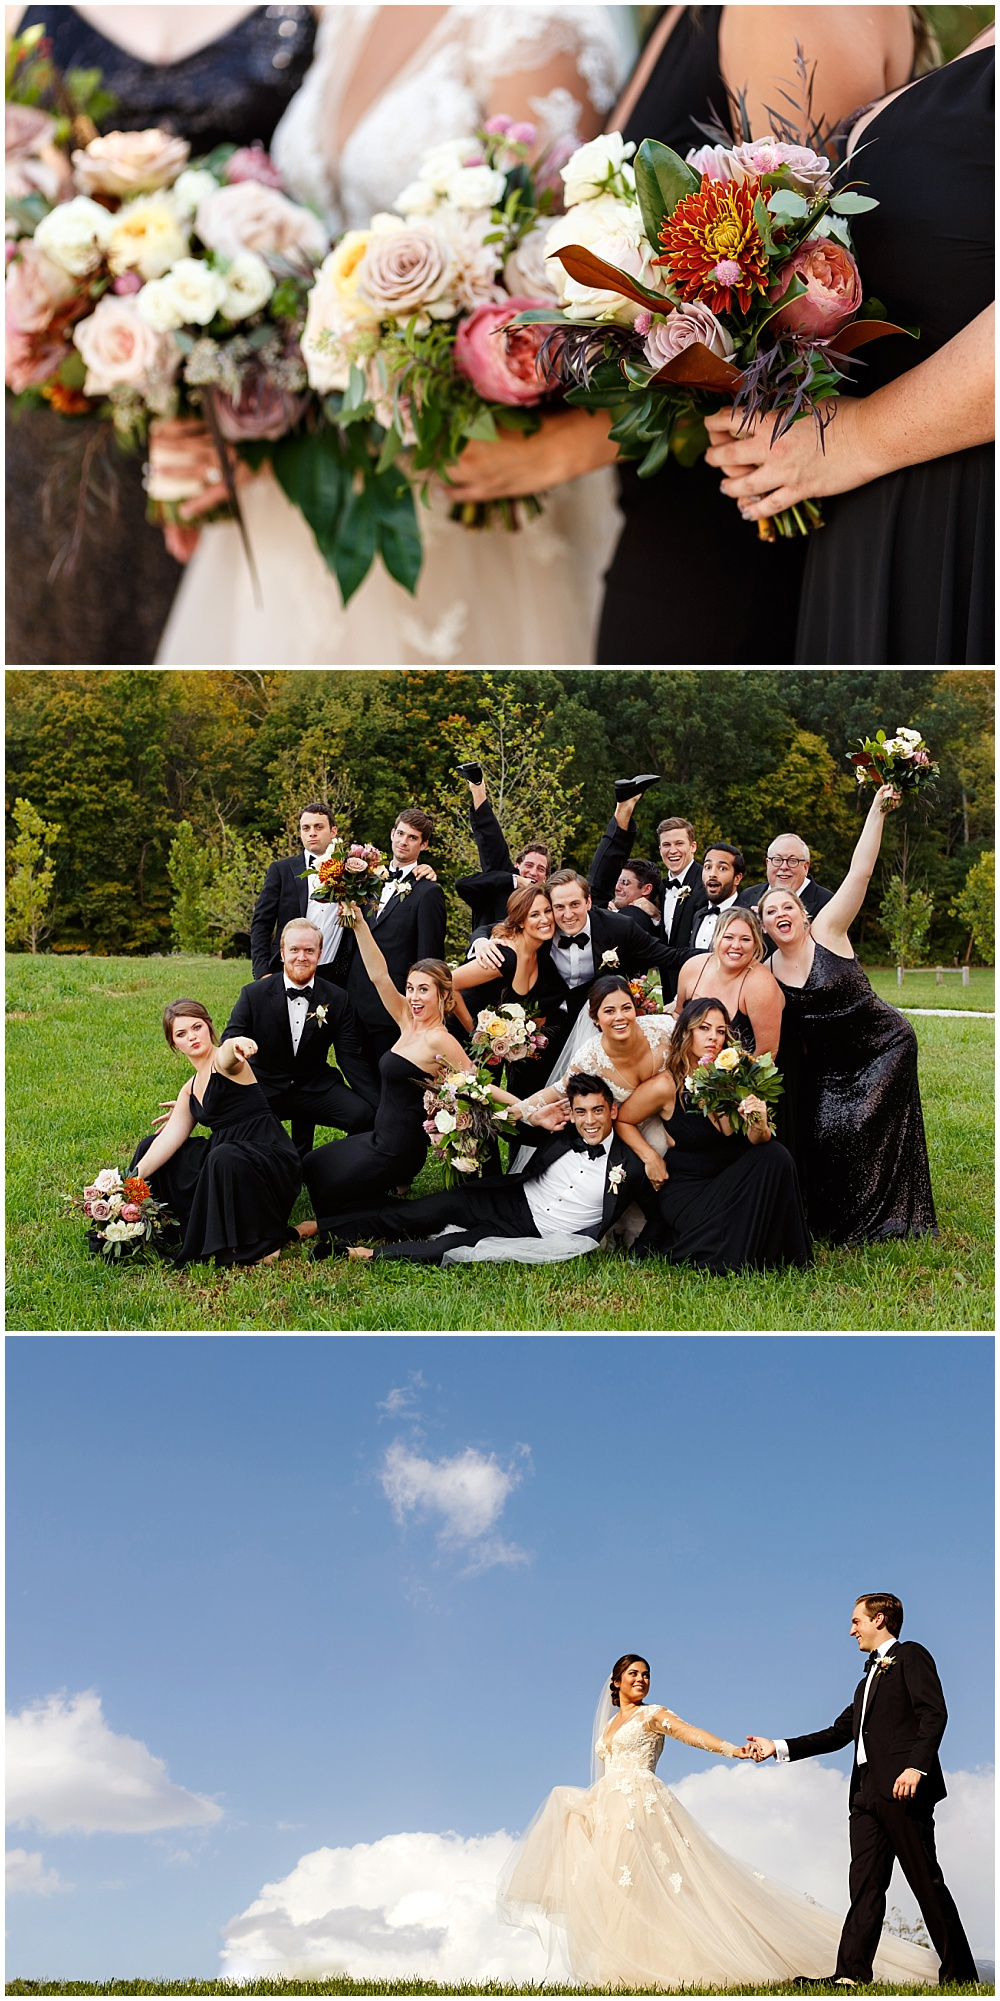 Black bridesmaid dresses with fall bridal bouquets | Fall Indianapolis Traders Point Creamery garden wedding - fall, rustic details with an abundance of wedding blooms, velvet linens and fun details with Bobbi Photo and Jessica Dum Wedding Coordination